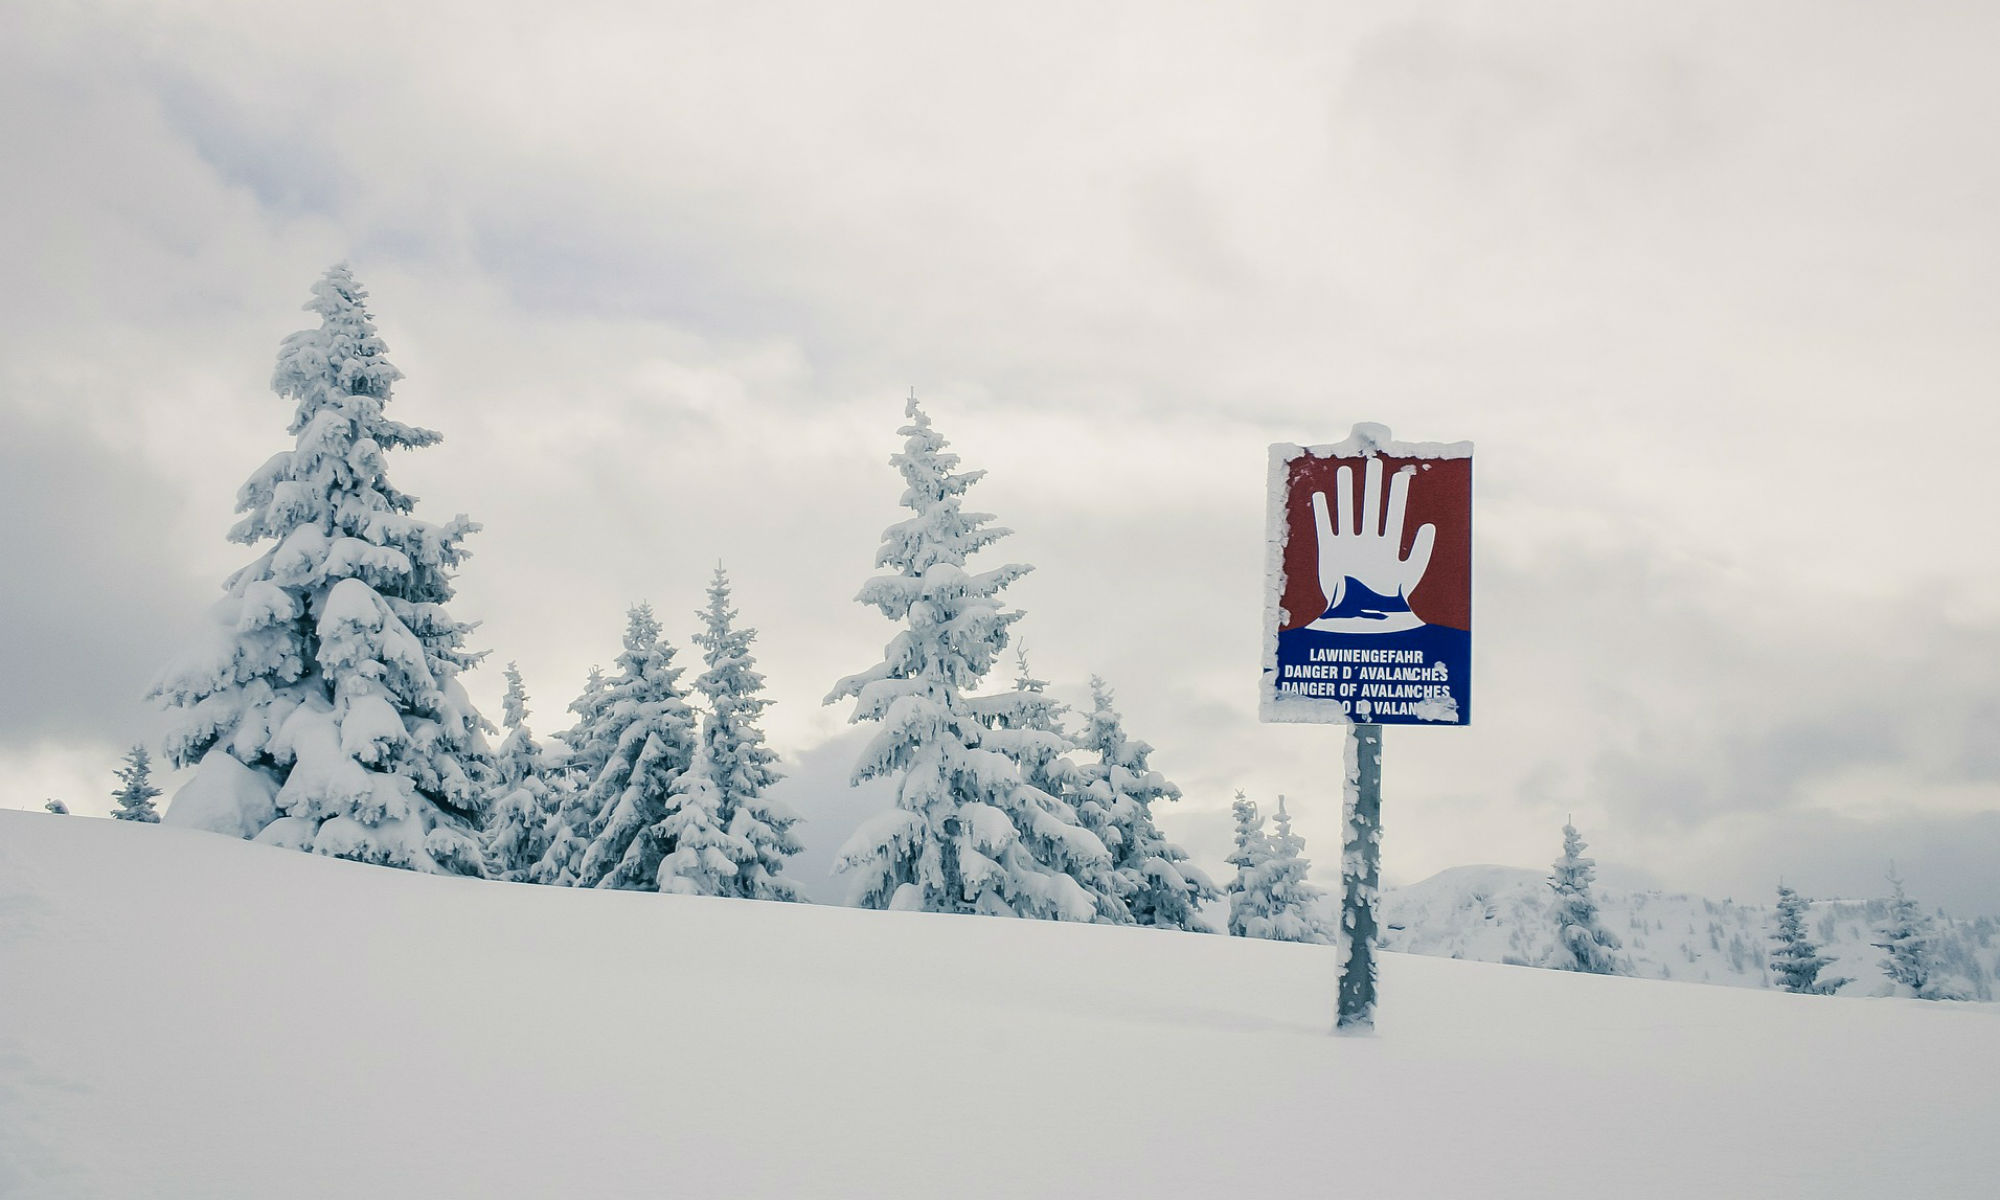 An avalanche warning sign on a powder snow descent.